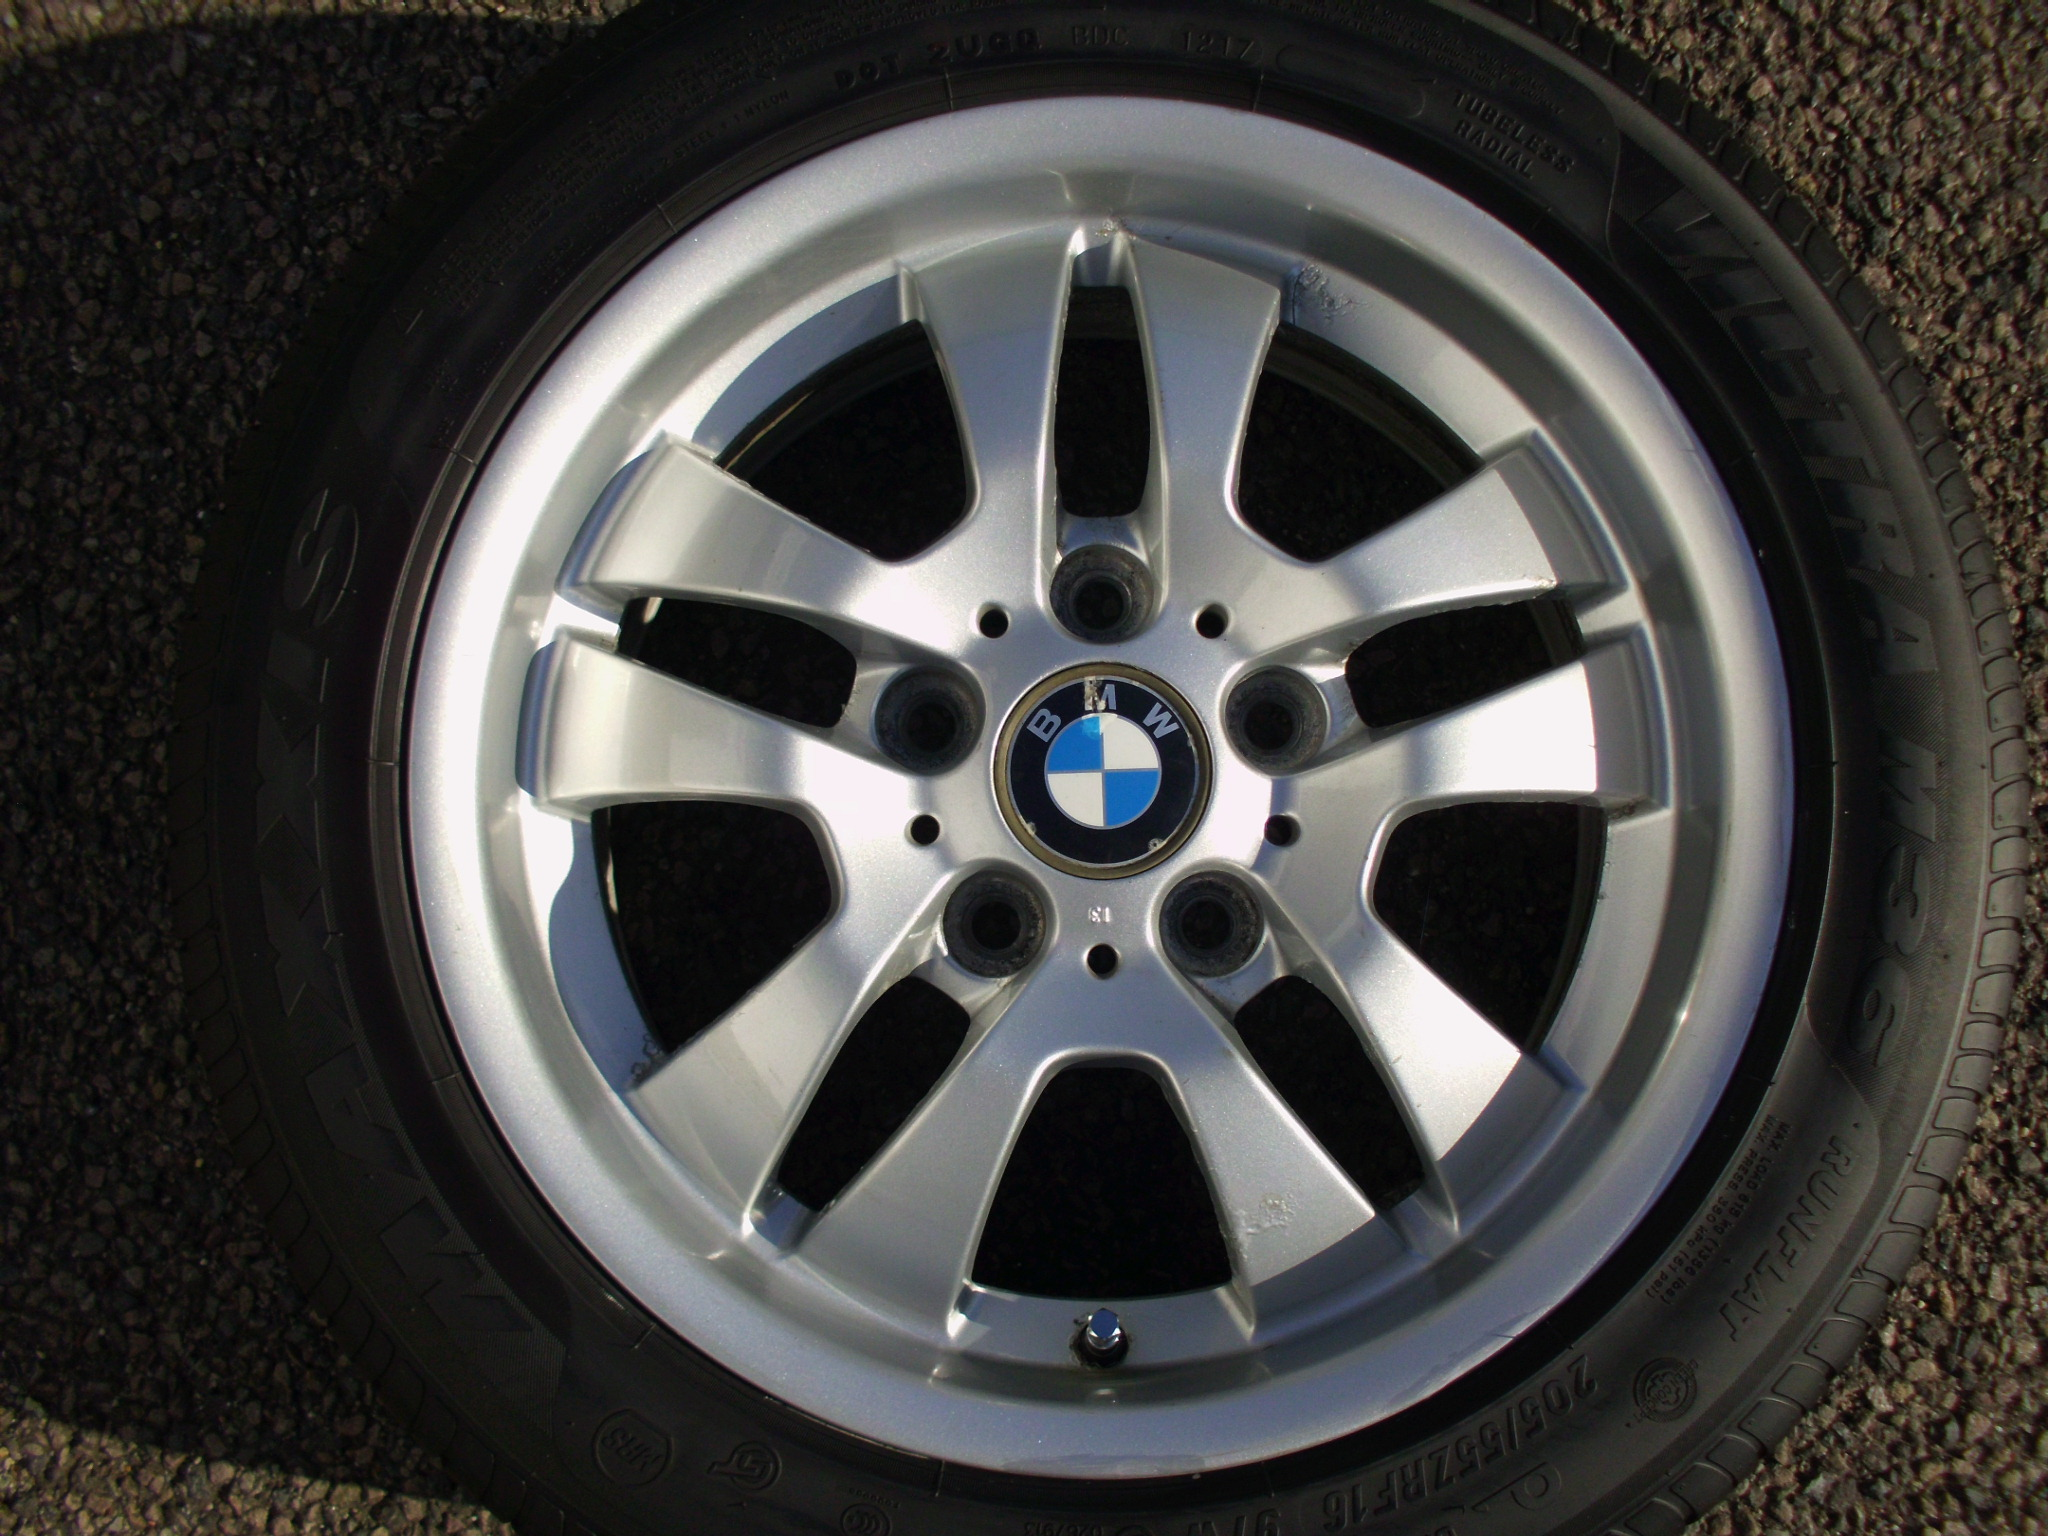 "USED SINGLE 16"" GENUINE BMW E90 STYLE 154 DOUBLE SPOKE ALLOY WHEEL ,GC, INC VG MAXXIS 205/55/16 RUNFLAT TYRE"